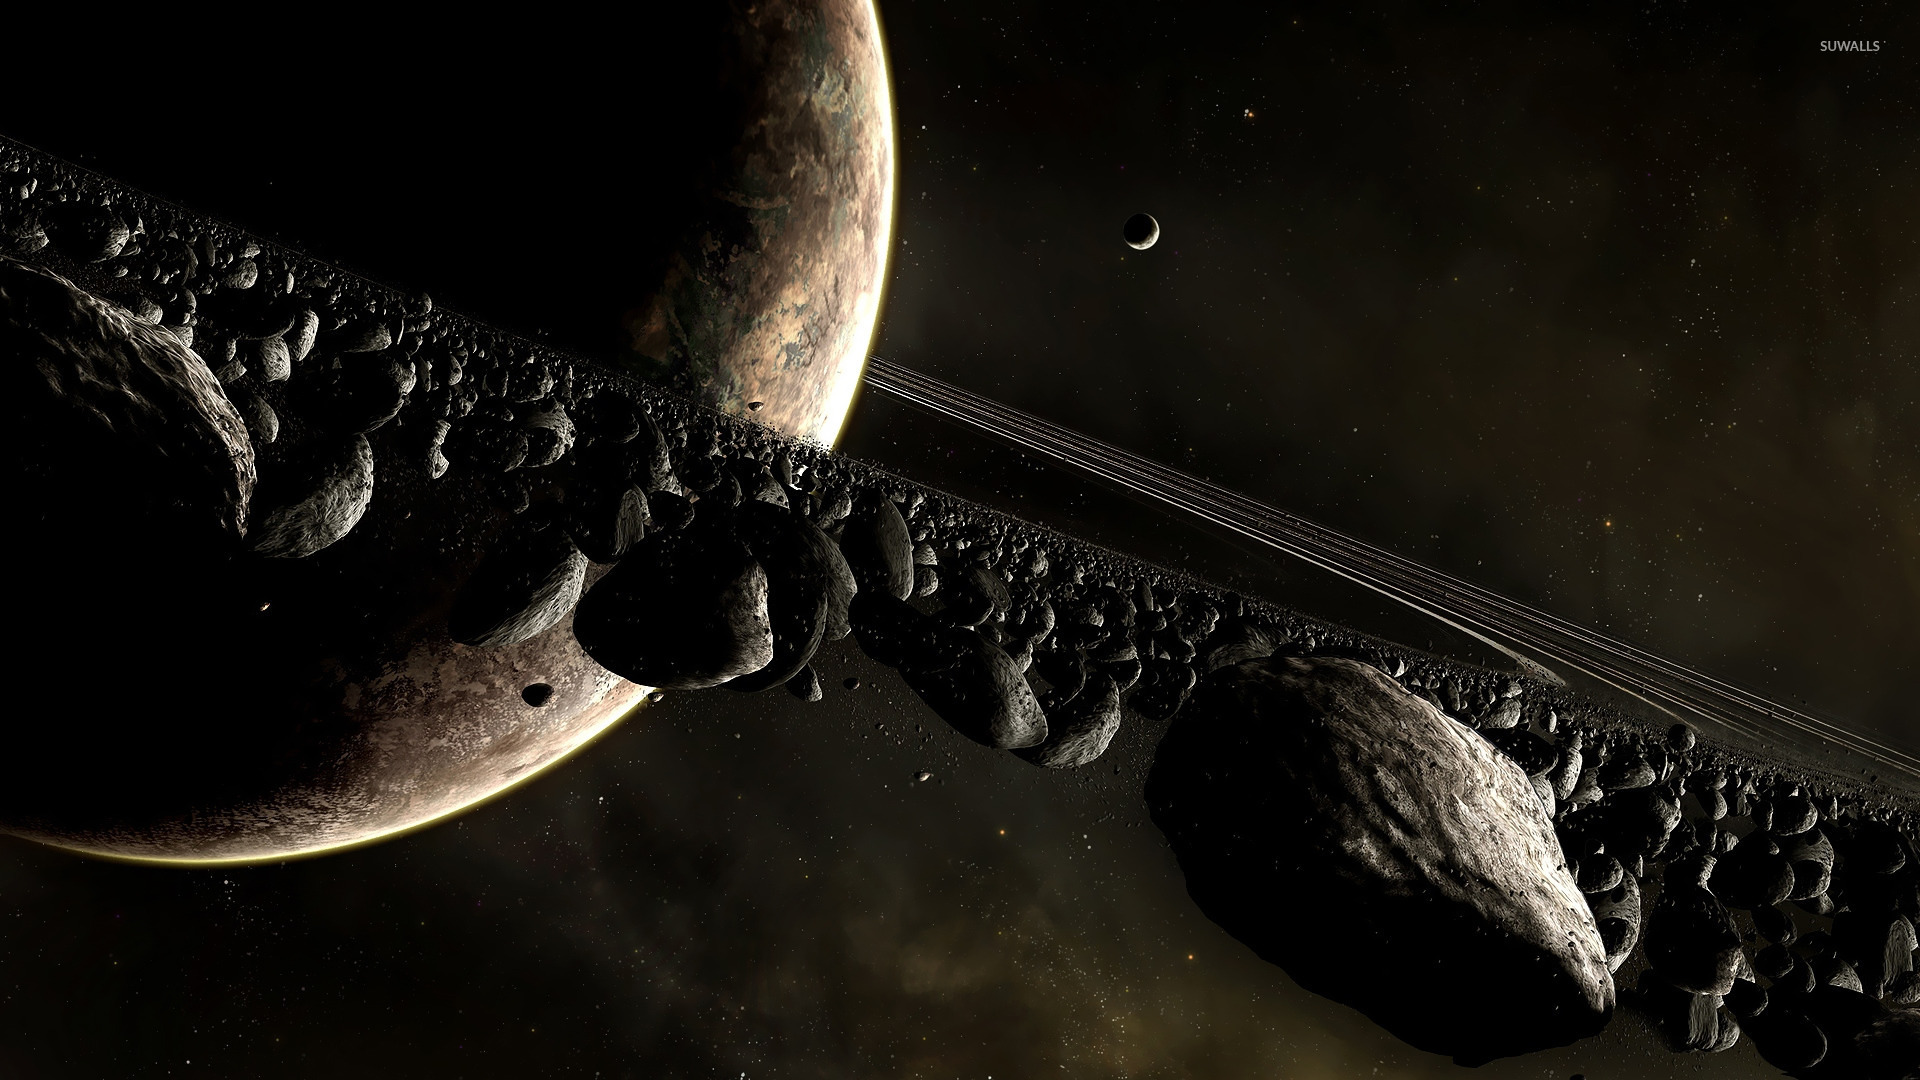 Planets-and-asteroids-1920×1080-Wallpaper